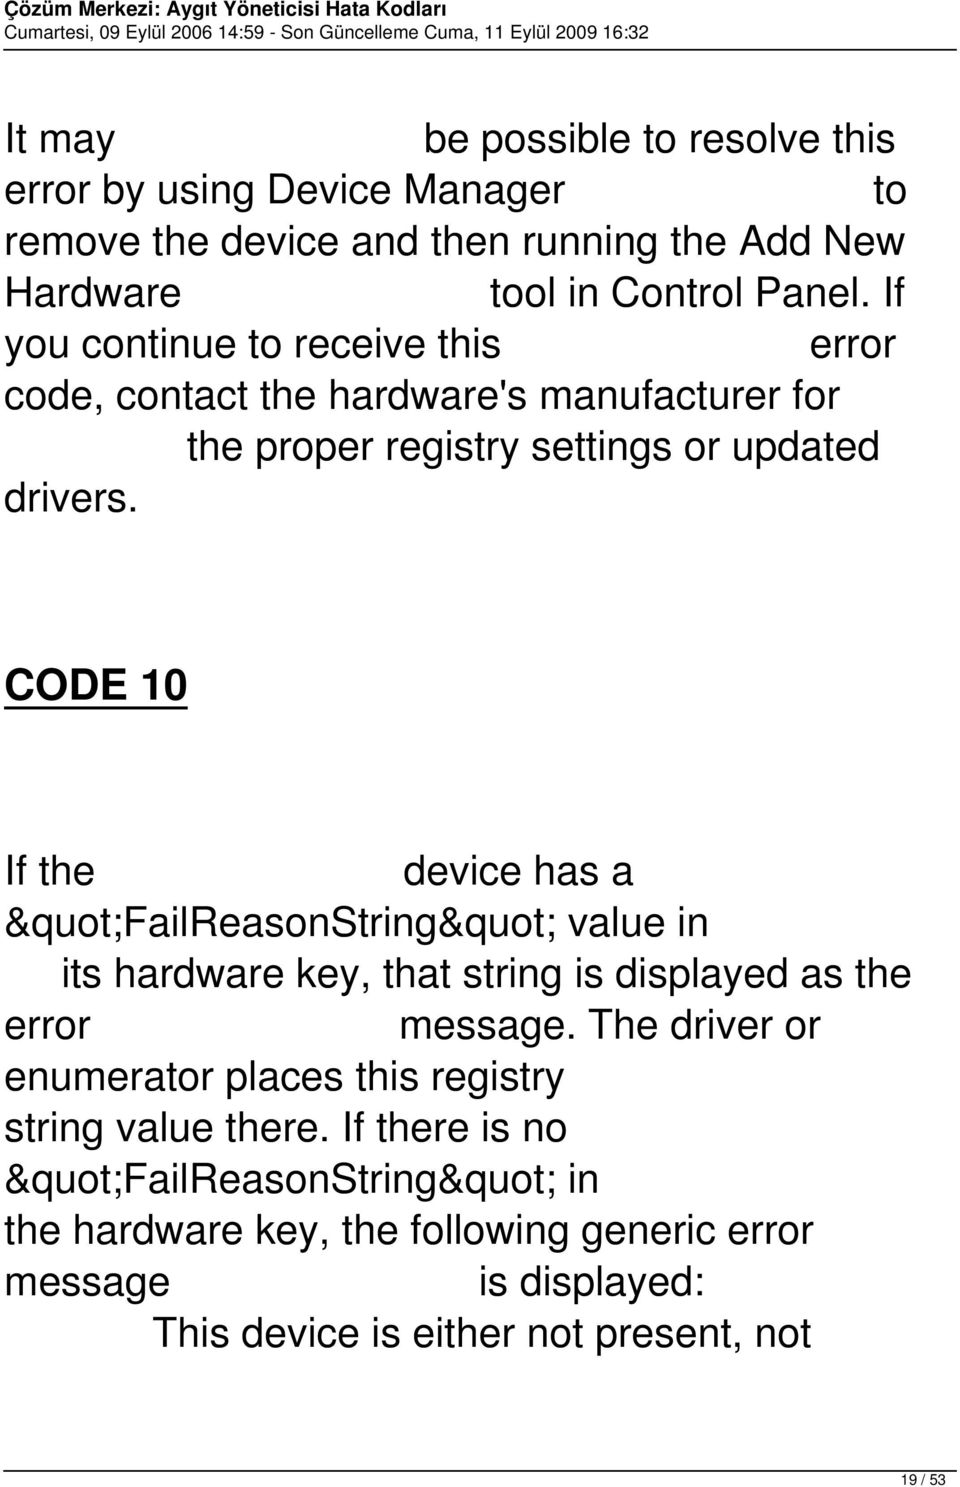 "CODE 10 If the device has a ""FailReasonString"" value in its hardware key, that string is displayed as the error message."